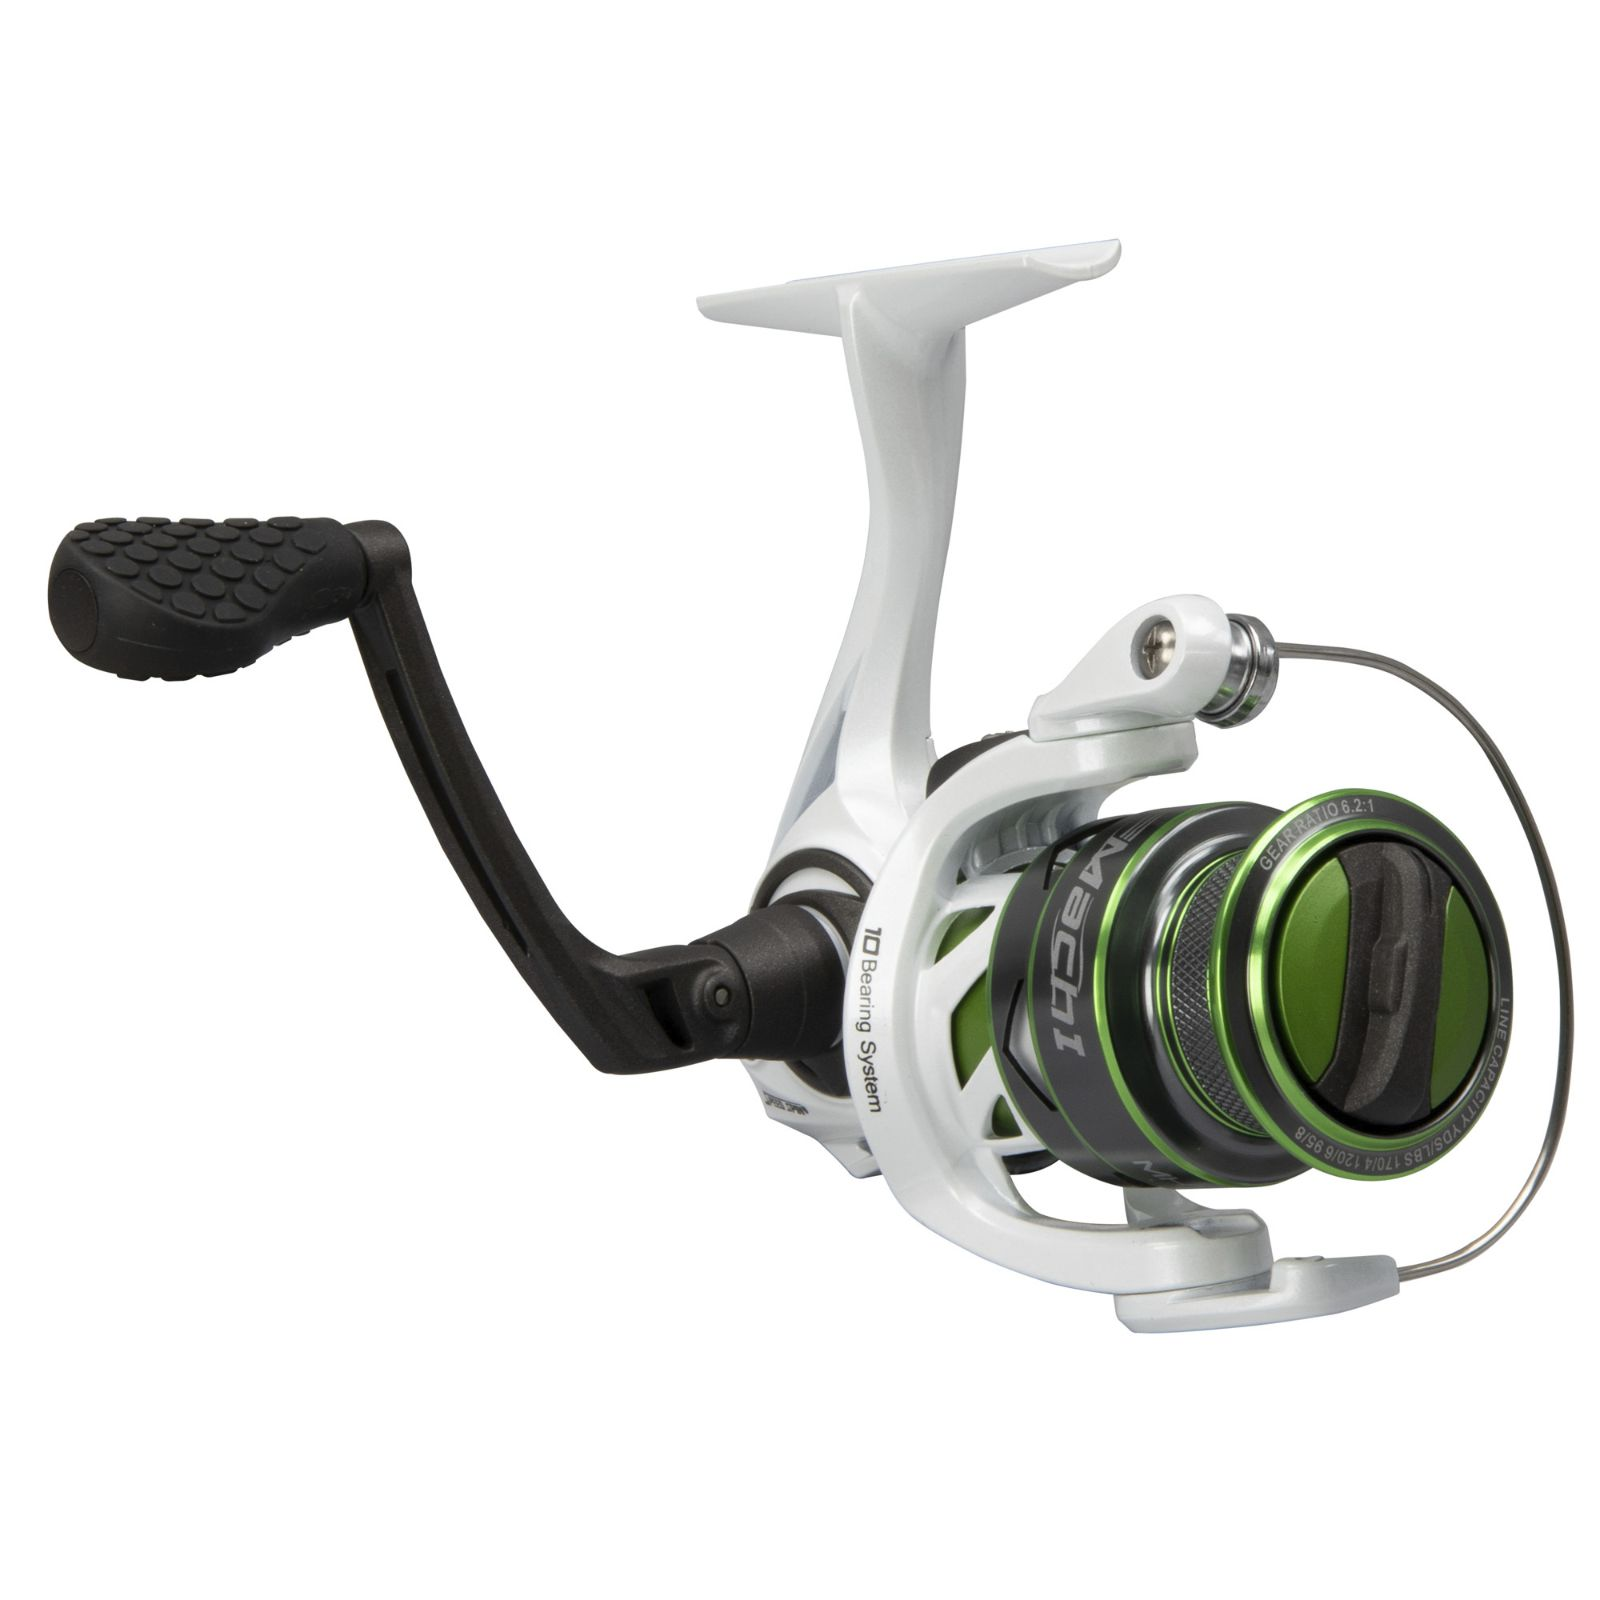 Lews MH100A Mach I Speed Spin Reel 6.2:1